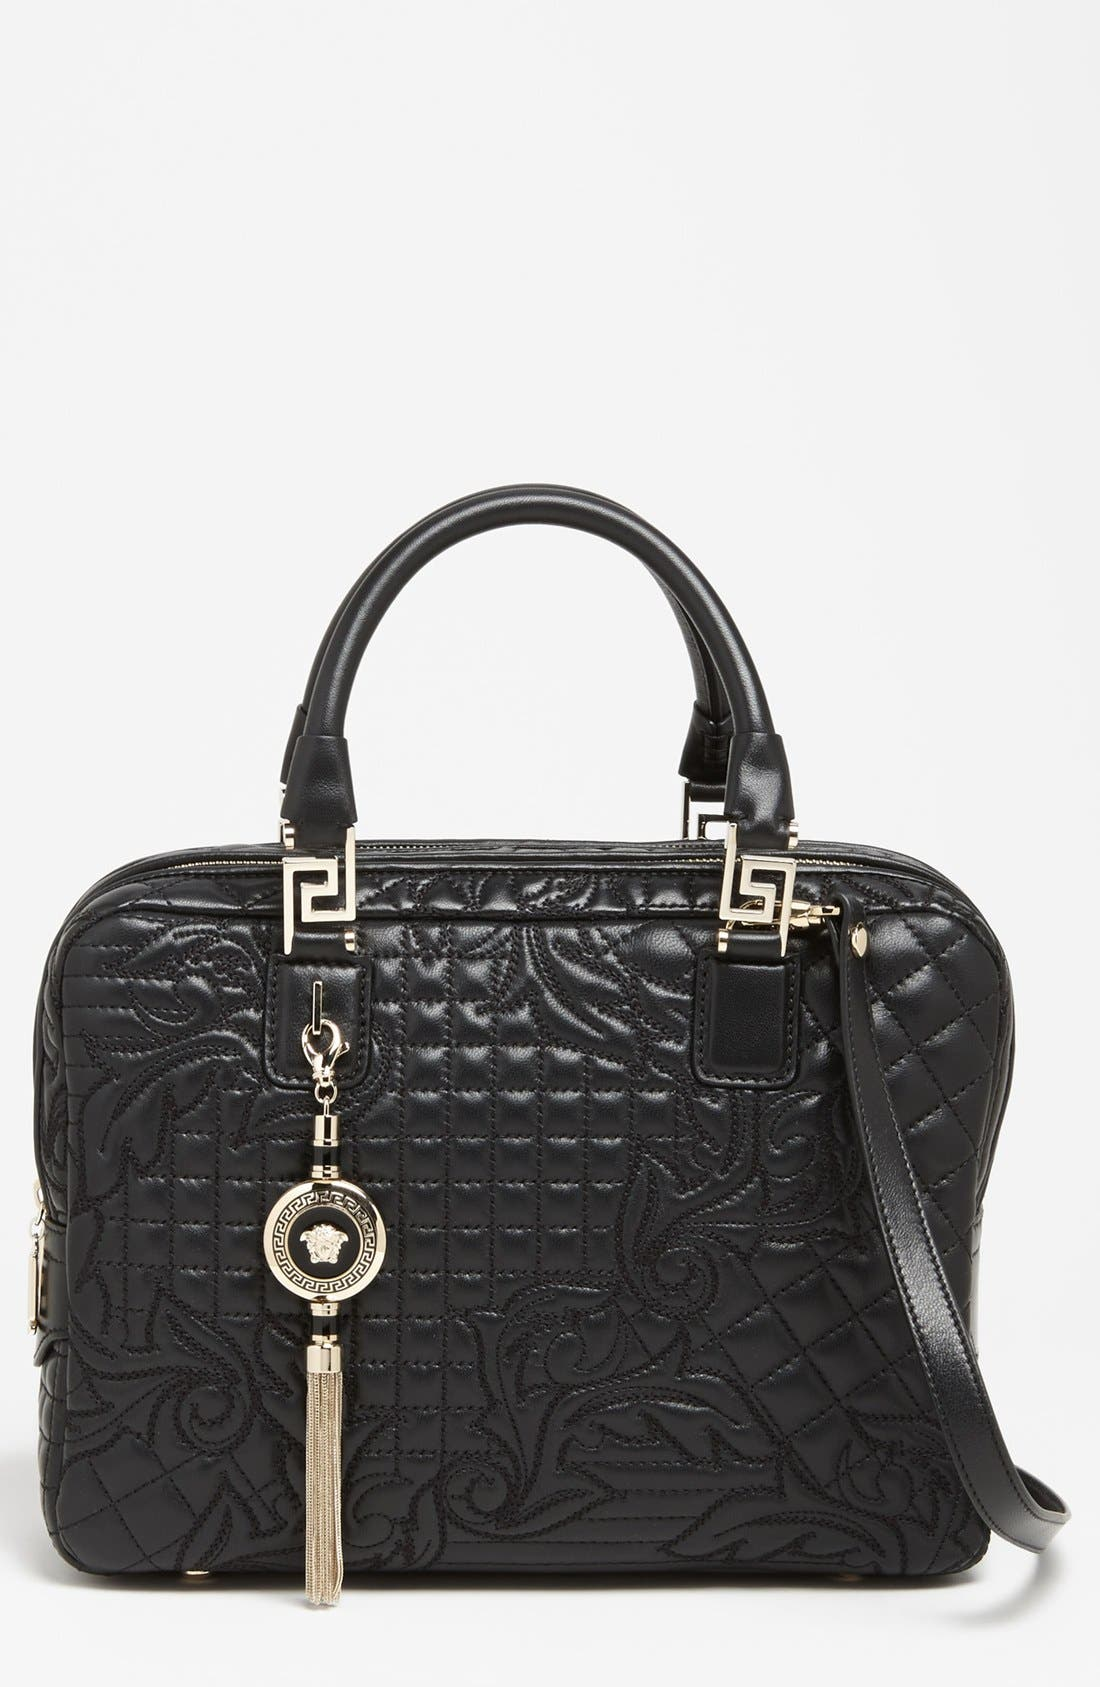 Main Image - Versace 'Linea' Embroidered Leather Satchel